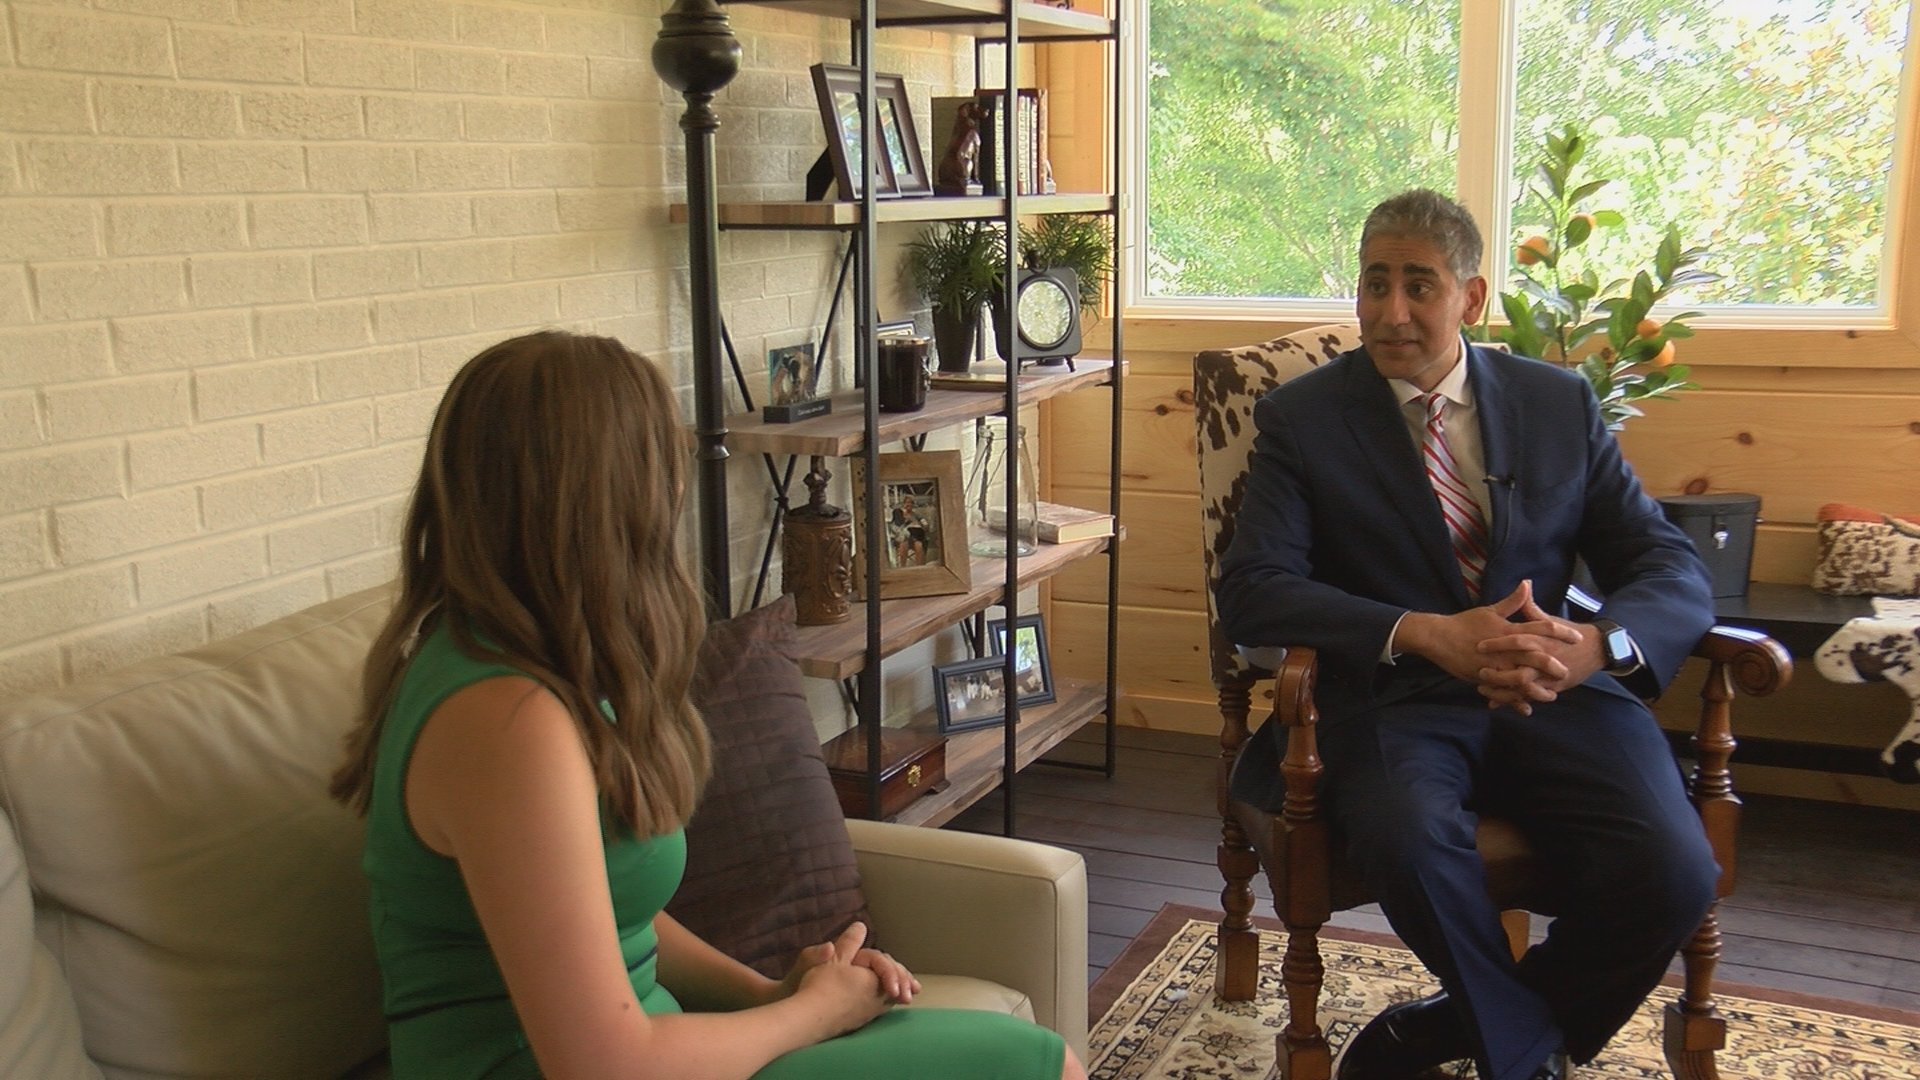 Full Interview U S Senate Candidate Dr Manny Sethi On Covid 19 Response Upcoming Election Wjhl Tri Cities News Weather